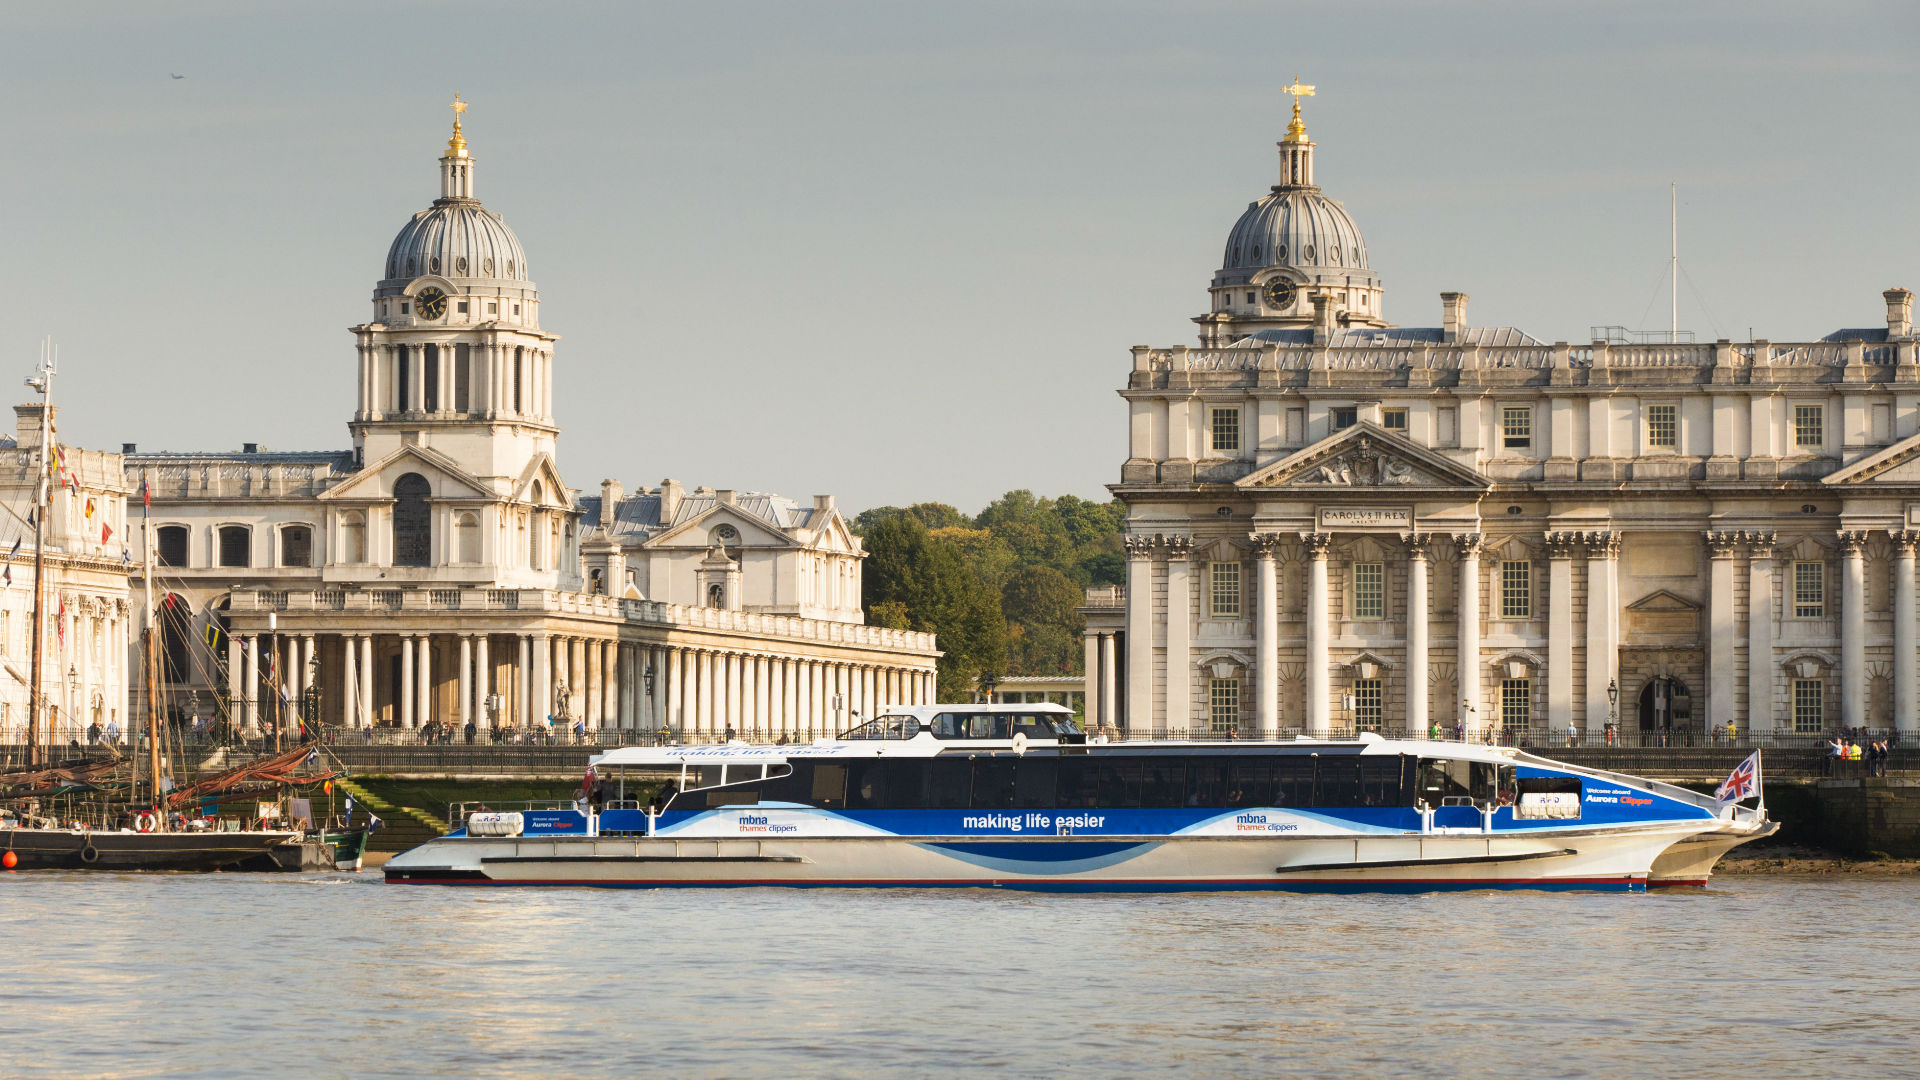 MBNA Thames Clippers on the Thames, against a backdrop of Old Royal Naval College, Greenwich. Image courtesy of Visit Greenwich.